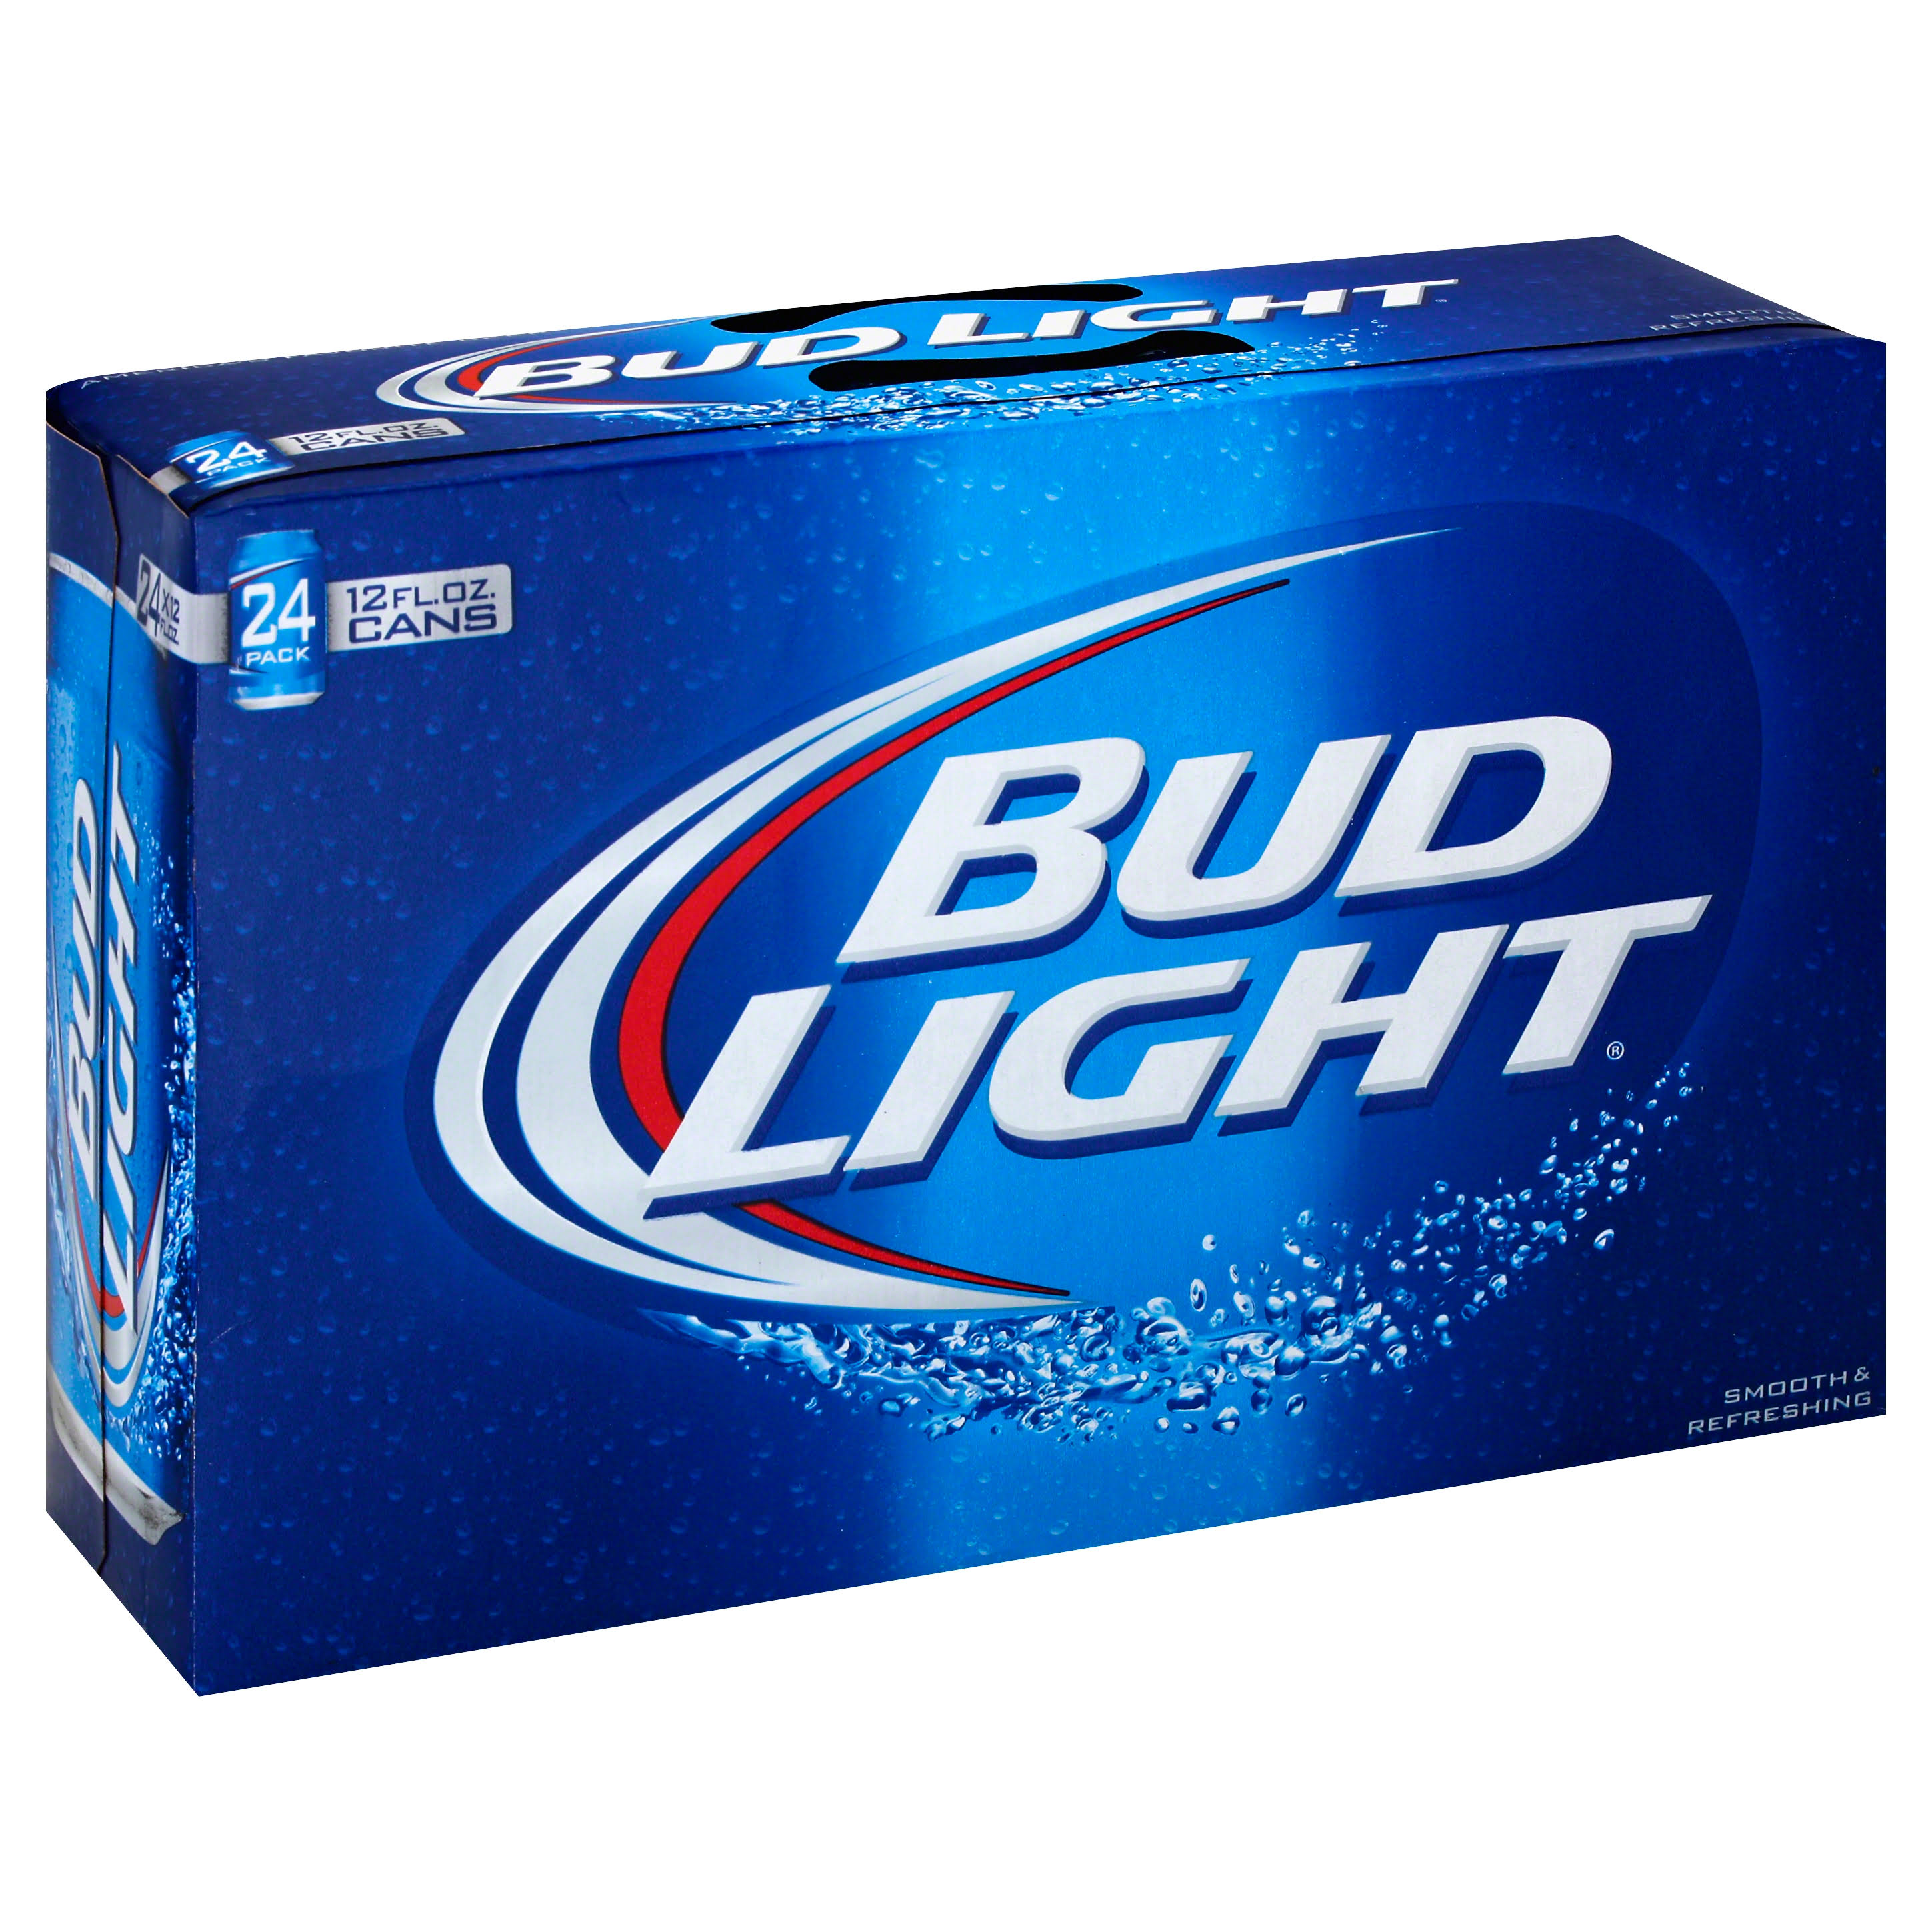 Bud Light Beer - 24 pack, 12 fl oz cans